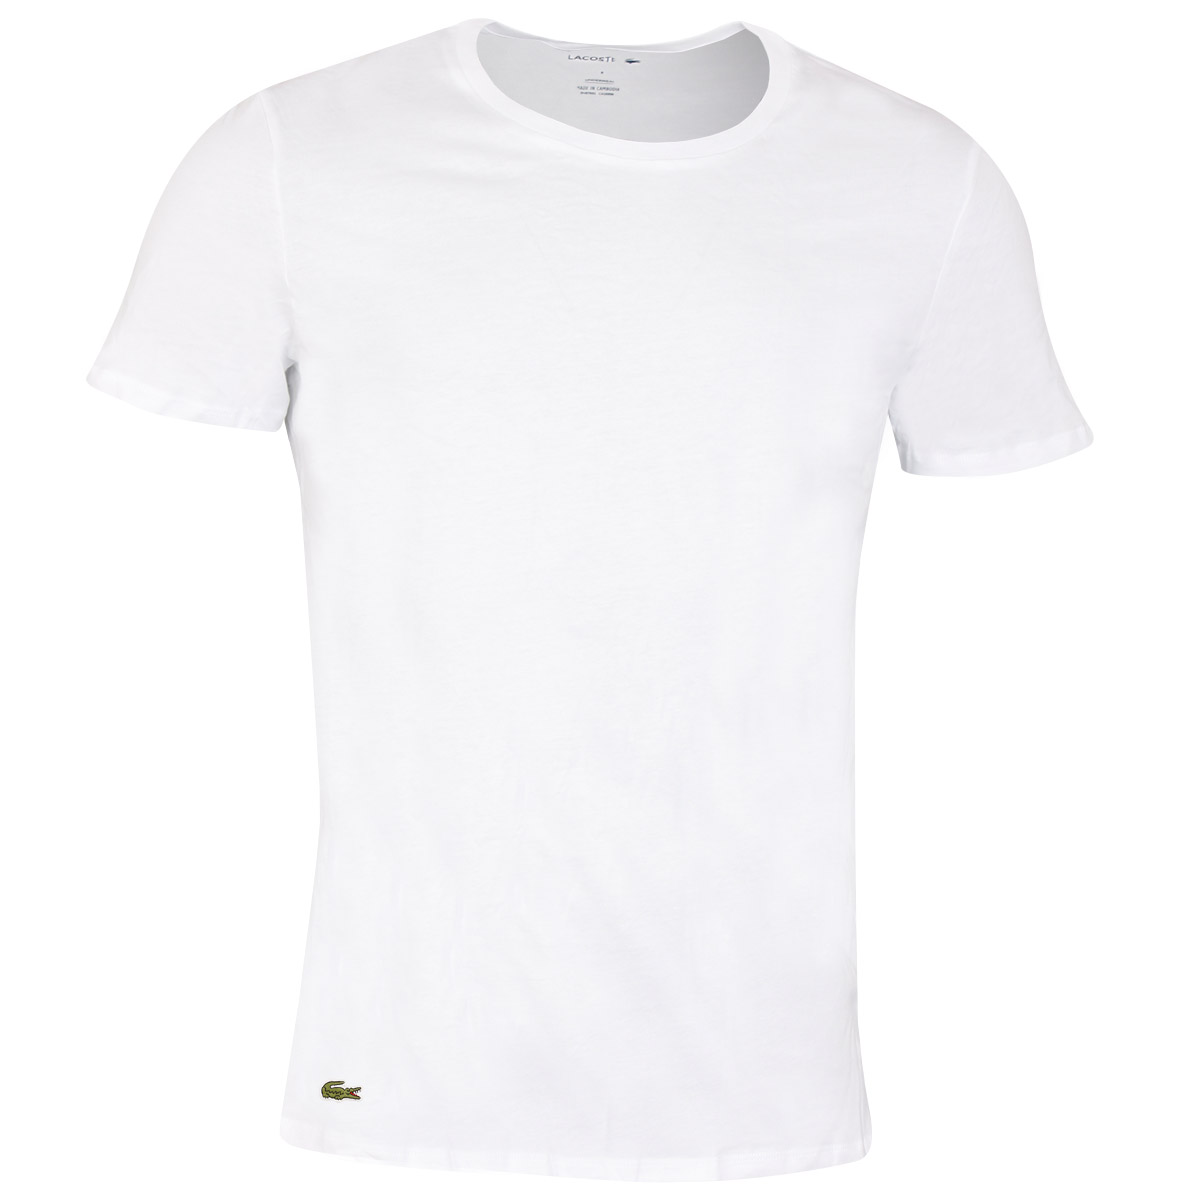 Lacoste-Mens-2020-TH3451-Crew-Neck-Cotton-Ribbed-Crocodile-3-Pack-T-Shirt thumbnail 6